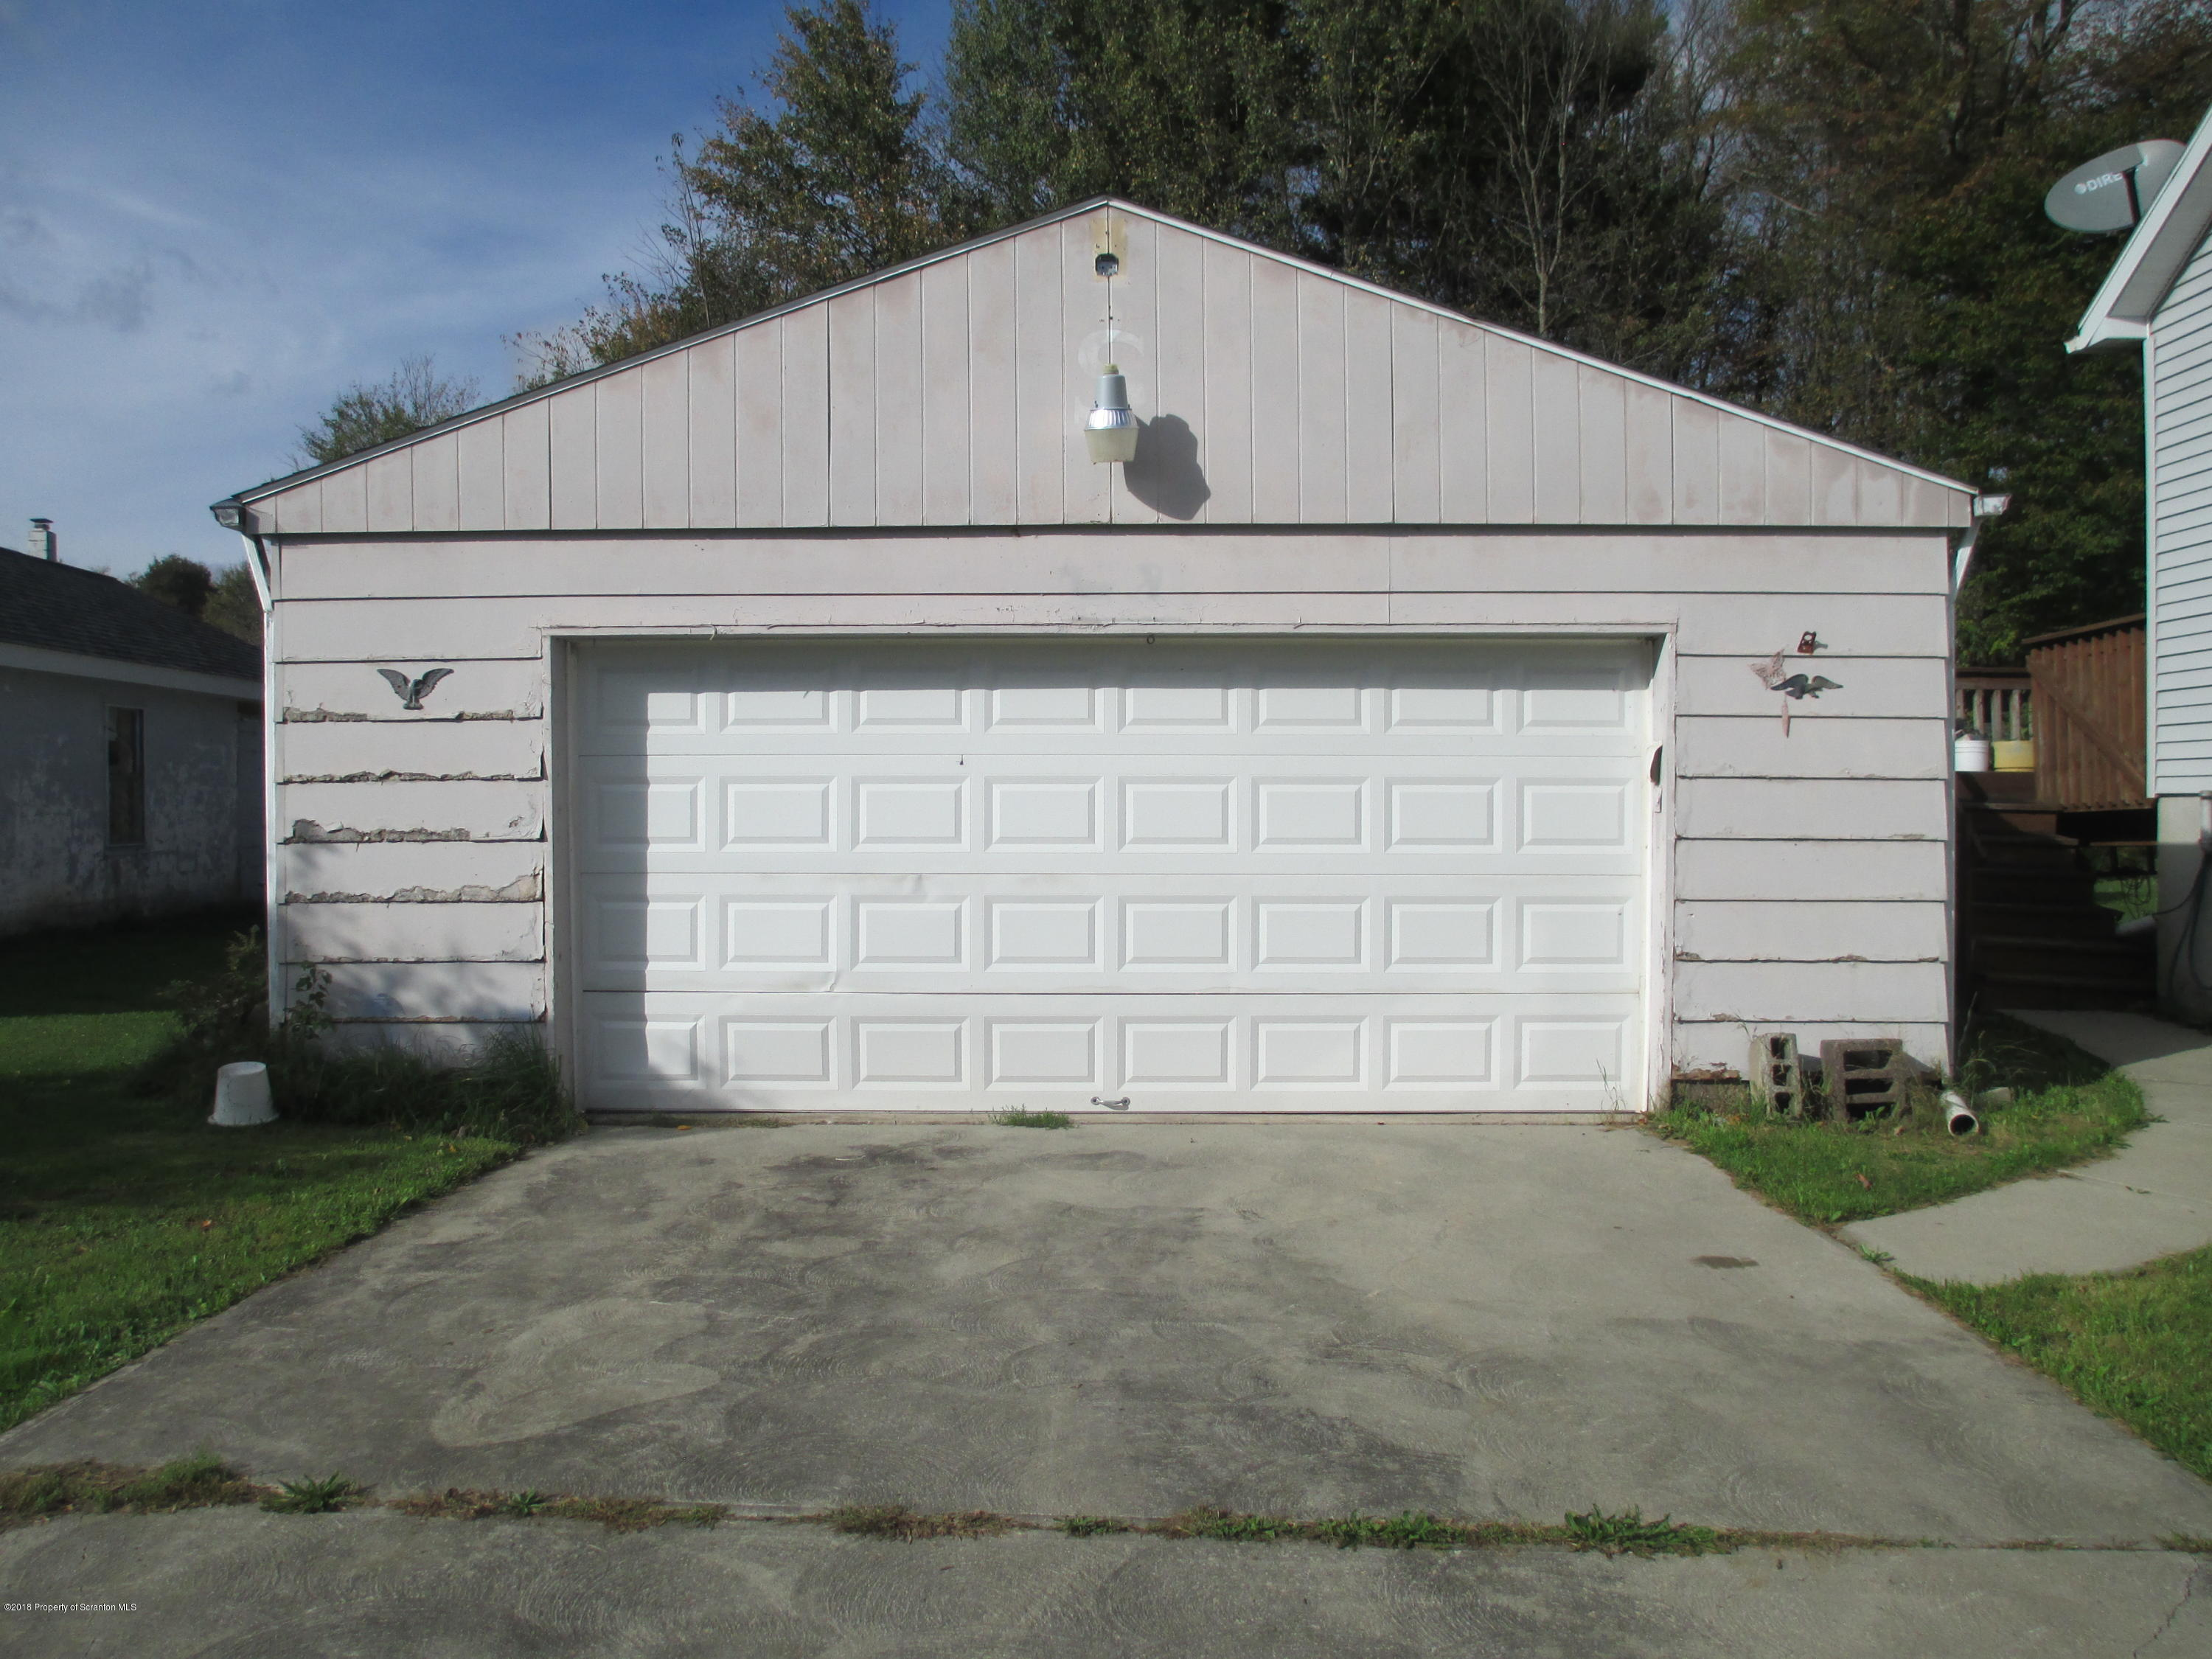 1495 State Route 502, Spring Brook Twp, Pennsylvania 18444, 3 Bedrooms Bedrooms, 8 Rooms Rooms,2 BathroomsBathrooms,Single Family,For Sale,State Route 502,19-1212